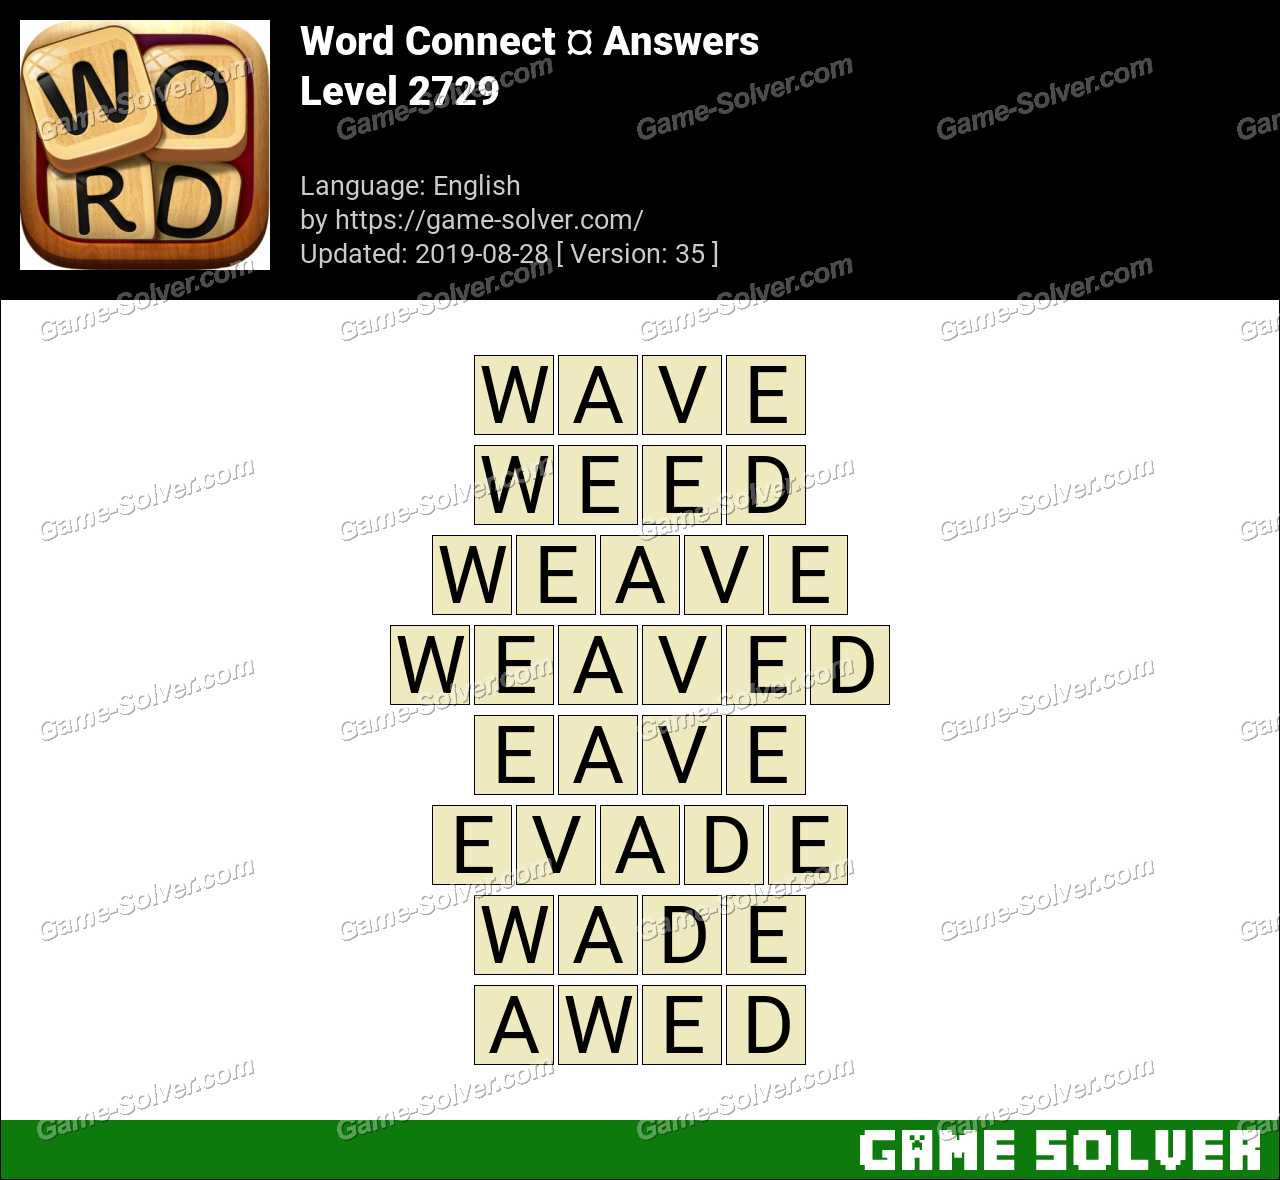 Word Connect Level 2729 Answers